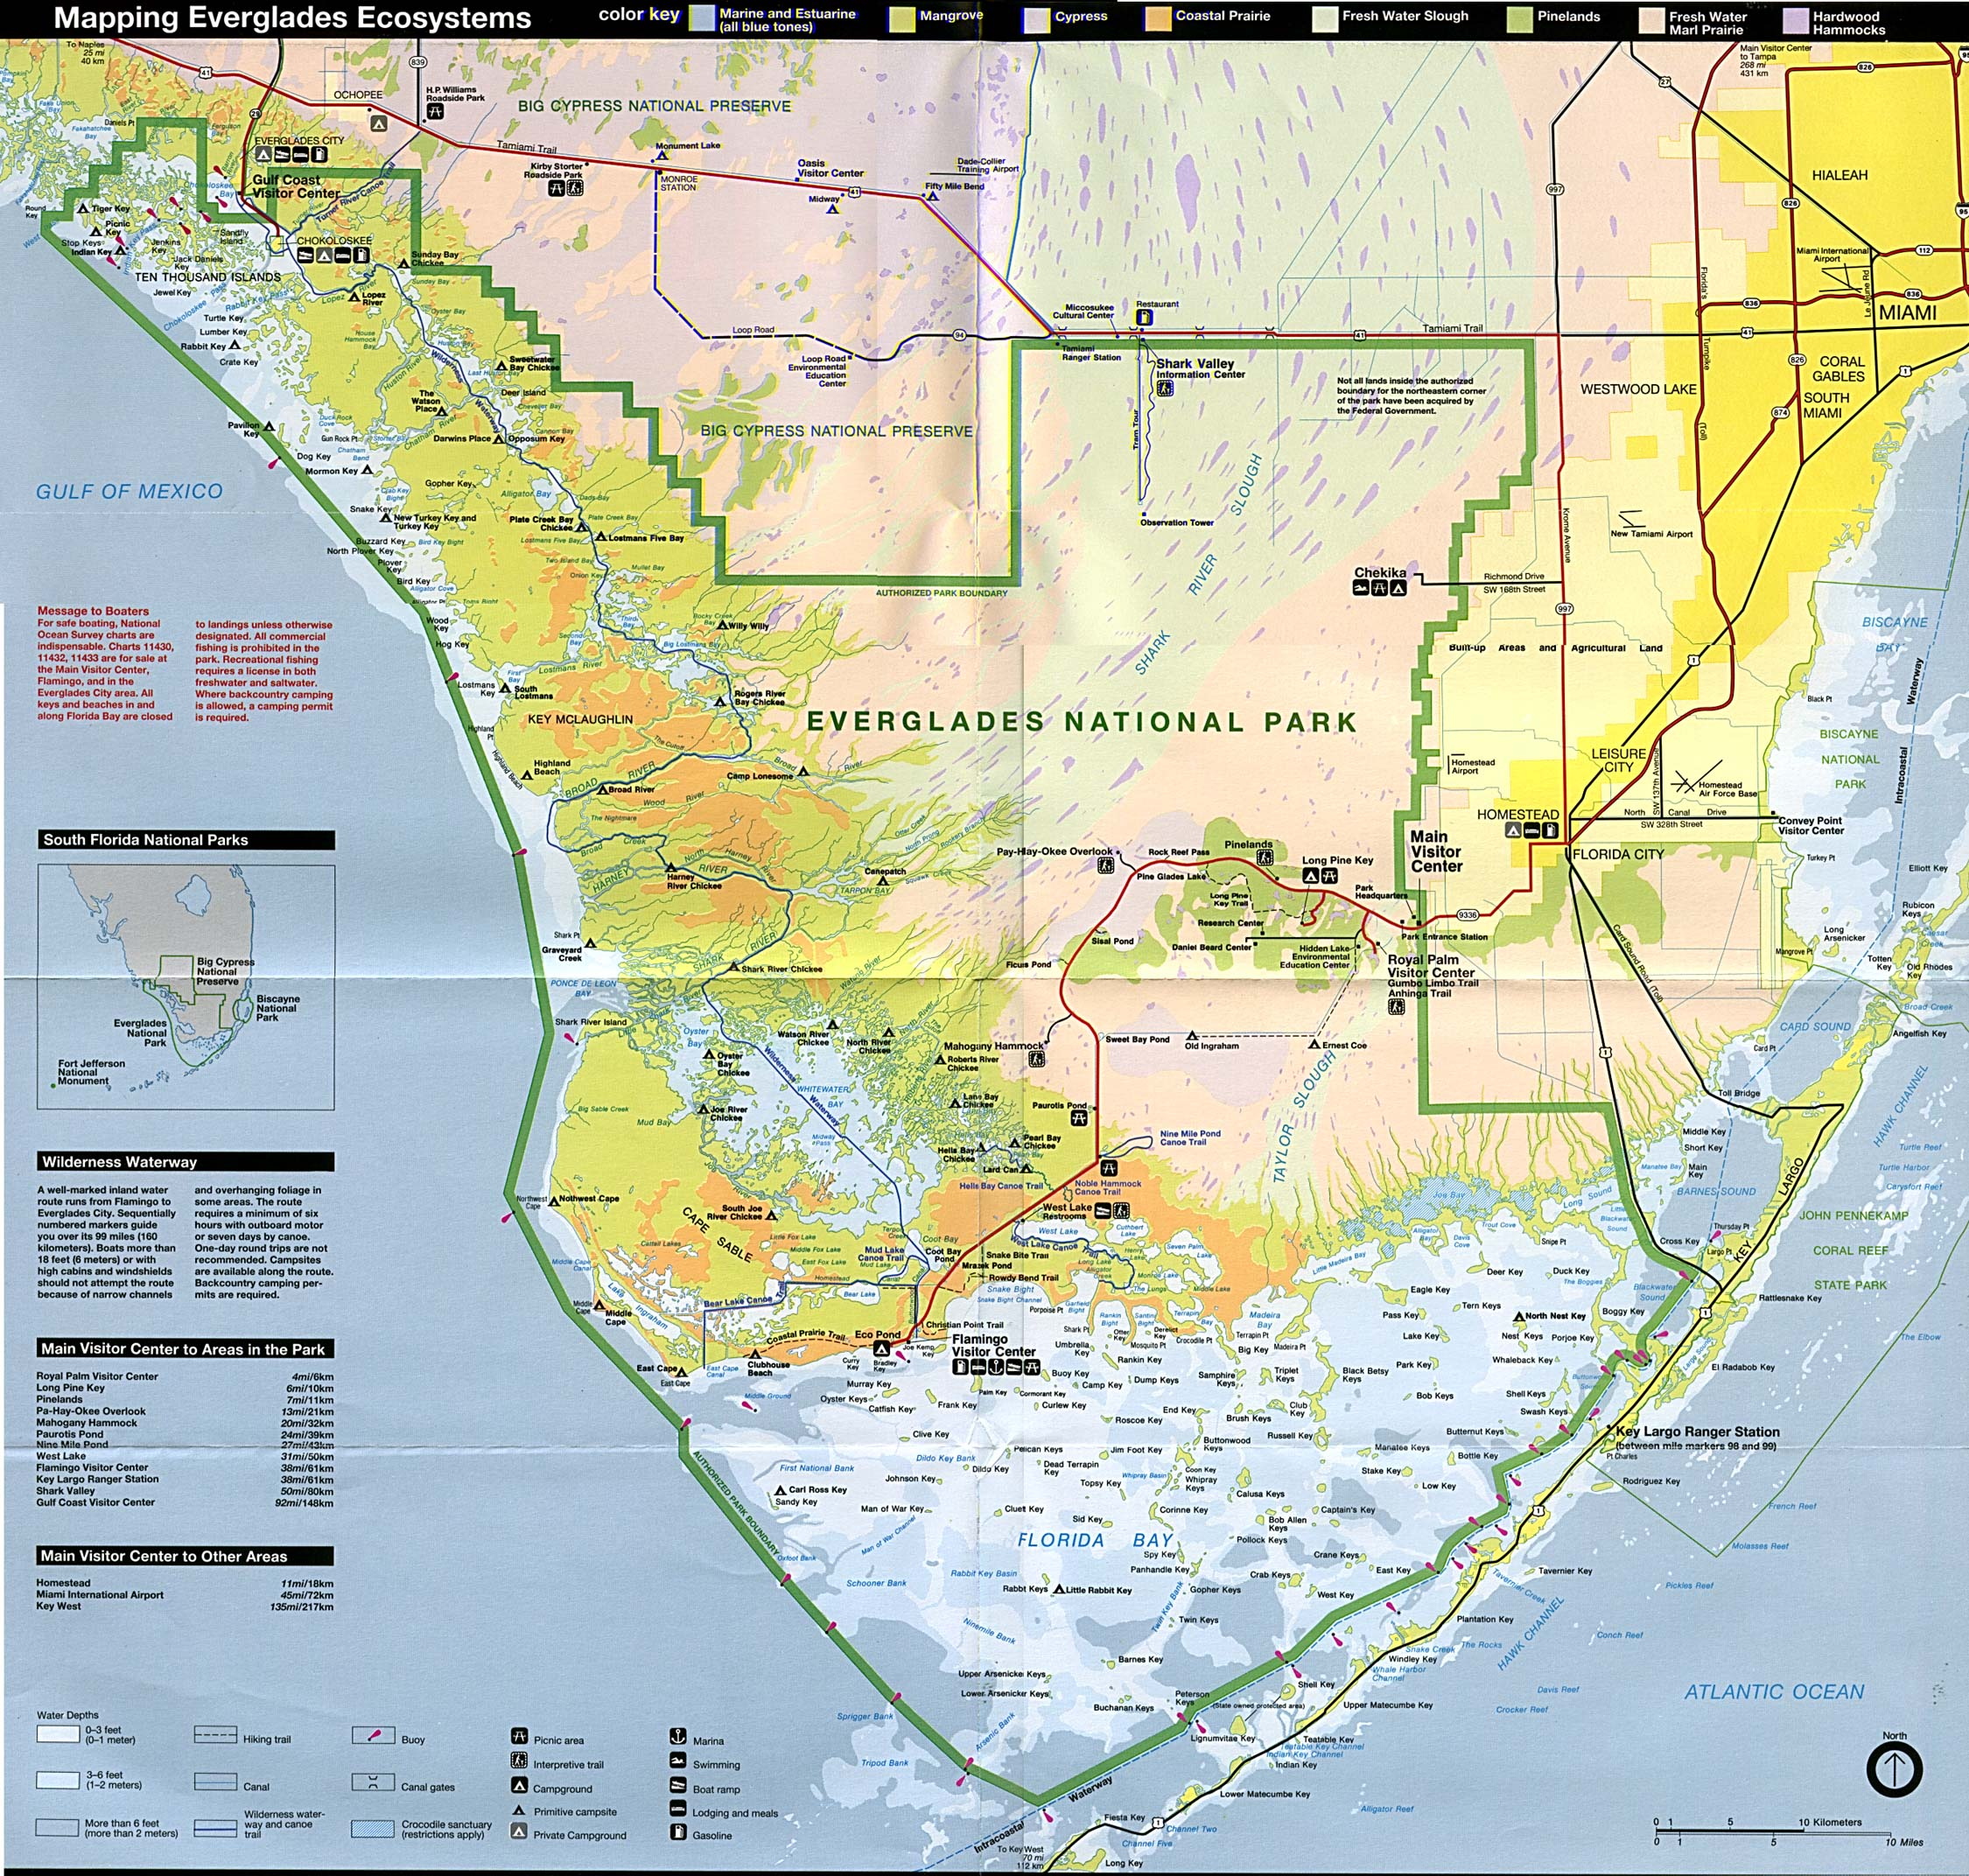 Everglades National Park Ecosystems Map, Florida, United States